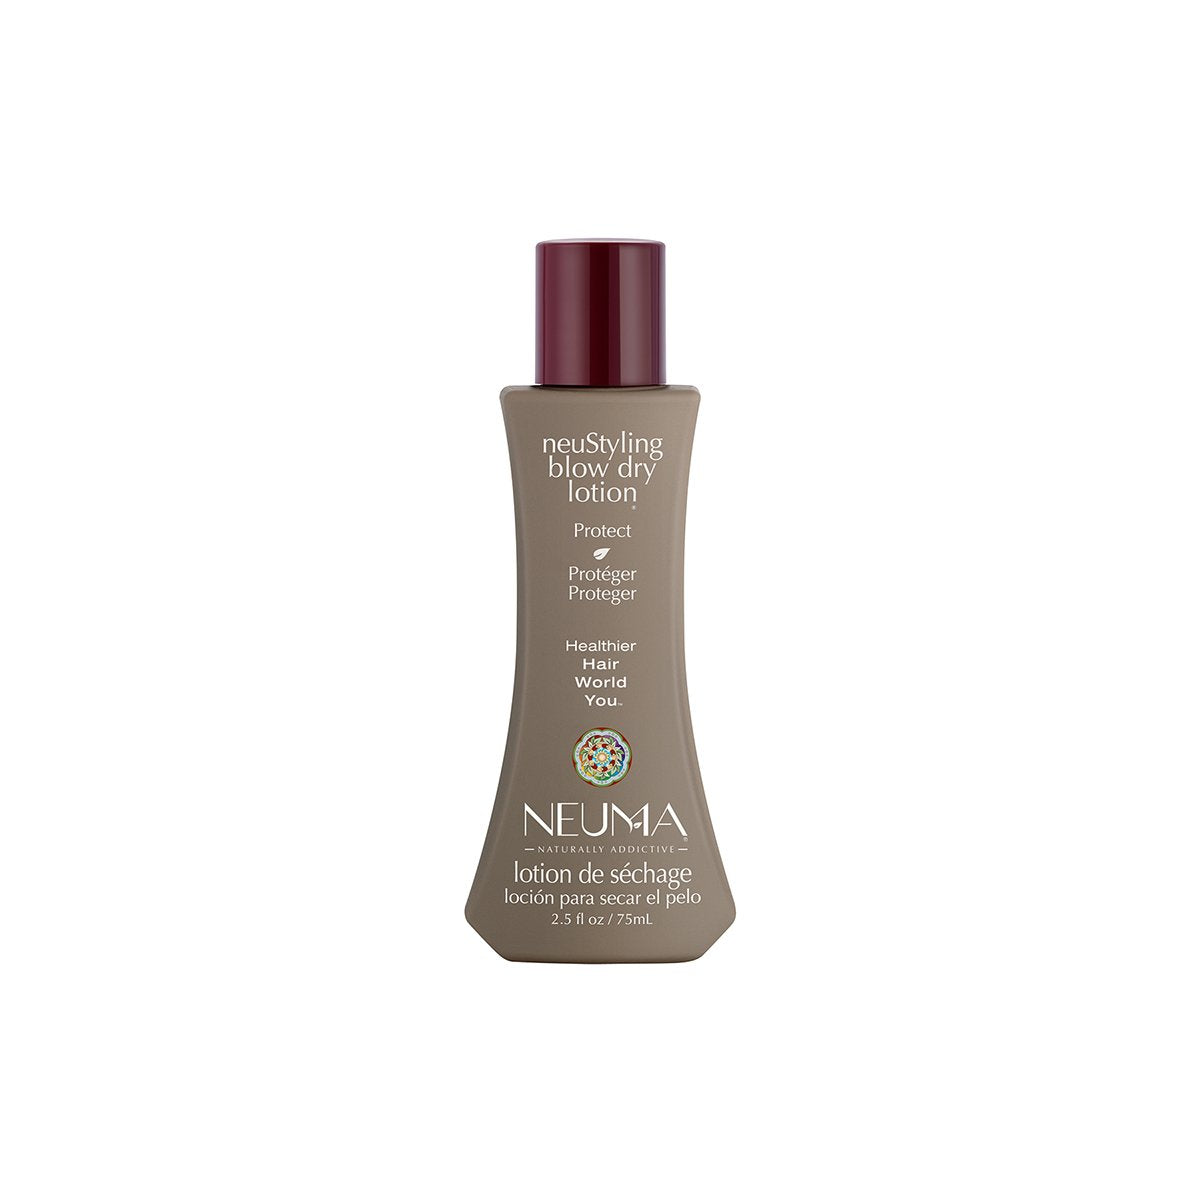 neuStyling blow dry lotion - Cocoa Spa Boutique